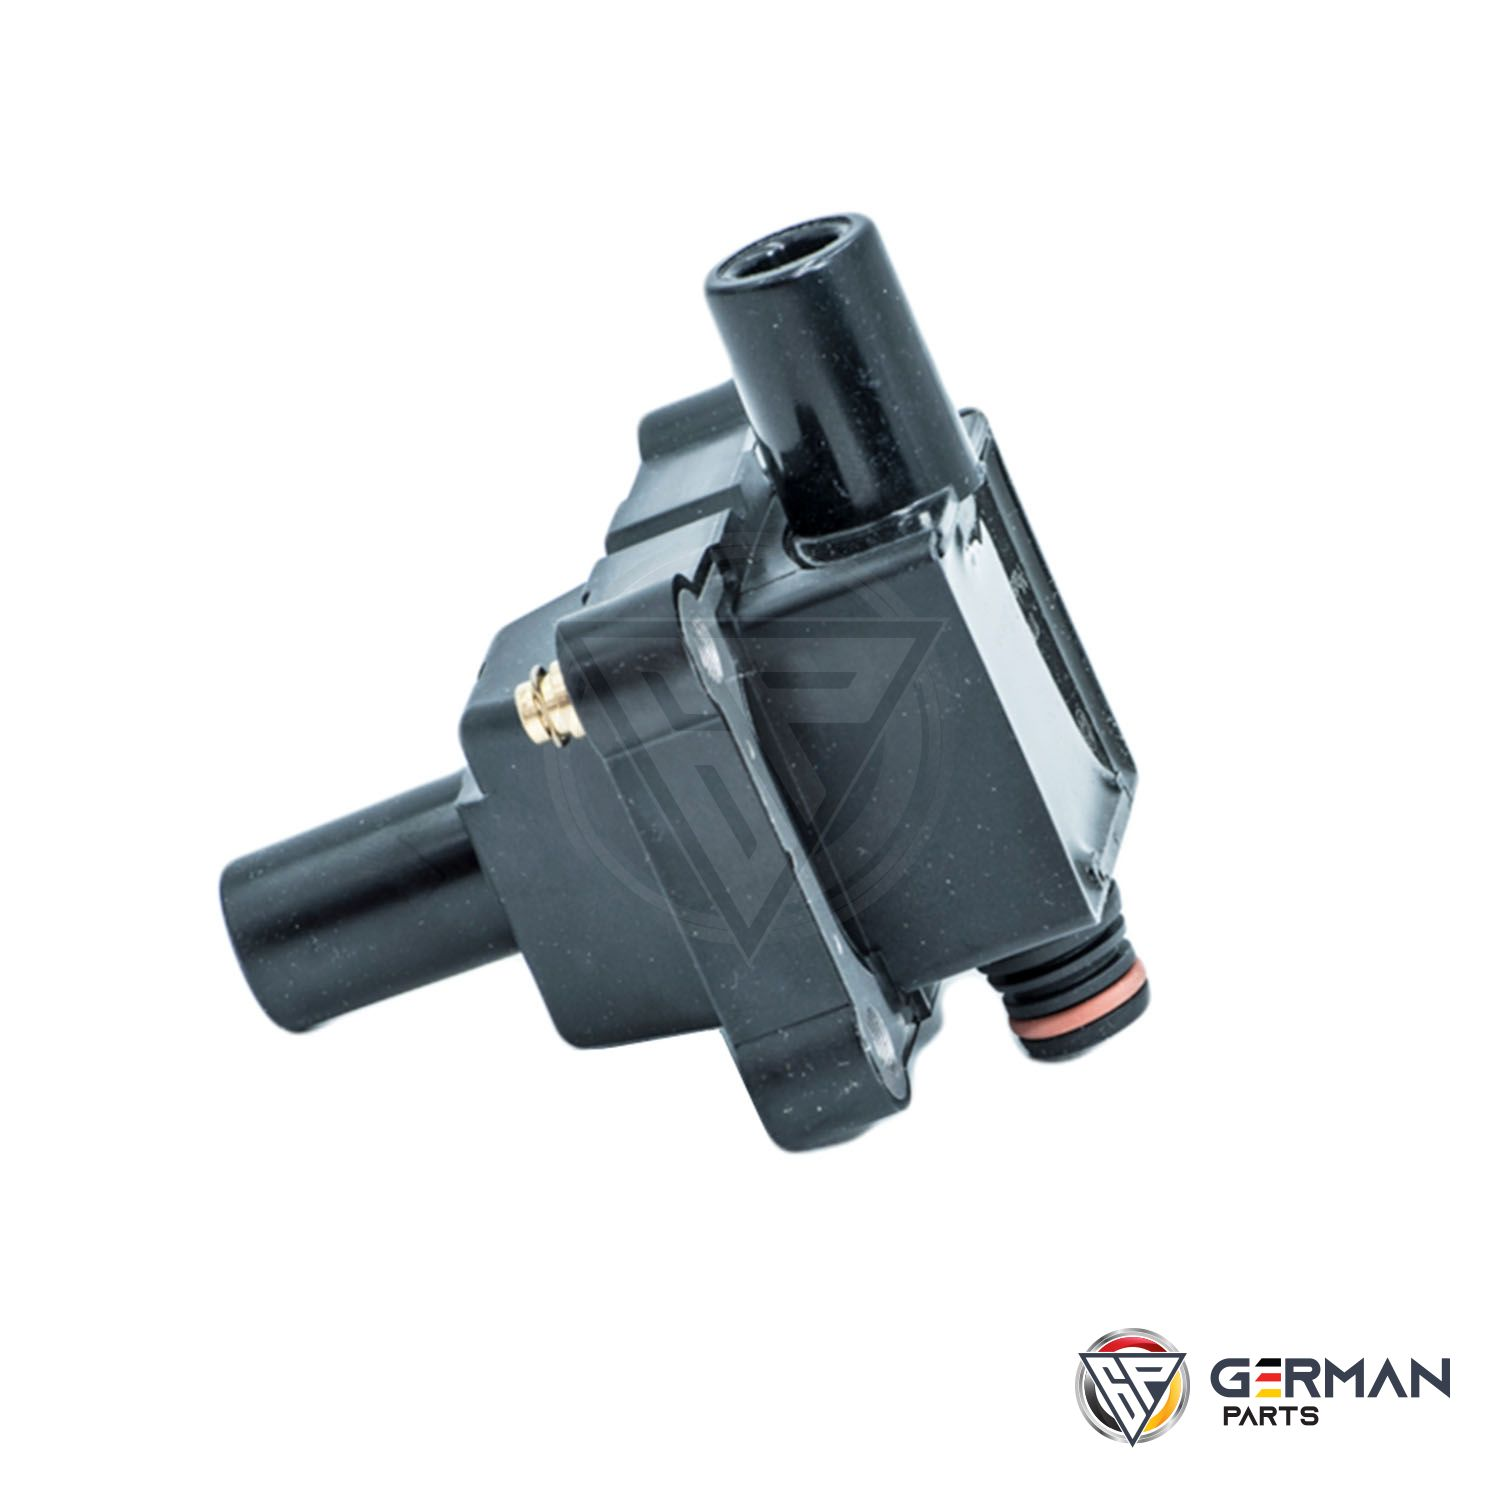 Buy Bosch Ignition Coil 0221506002 - German Parts